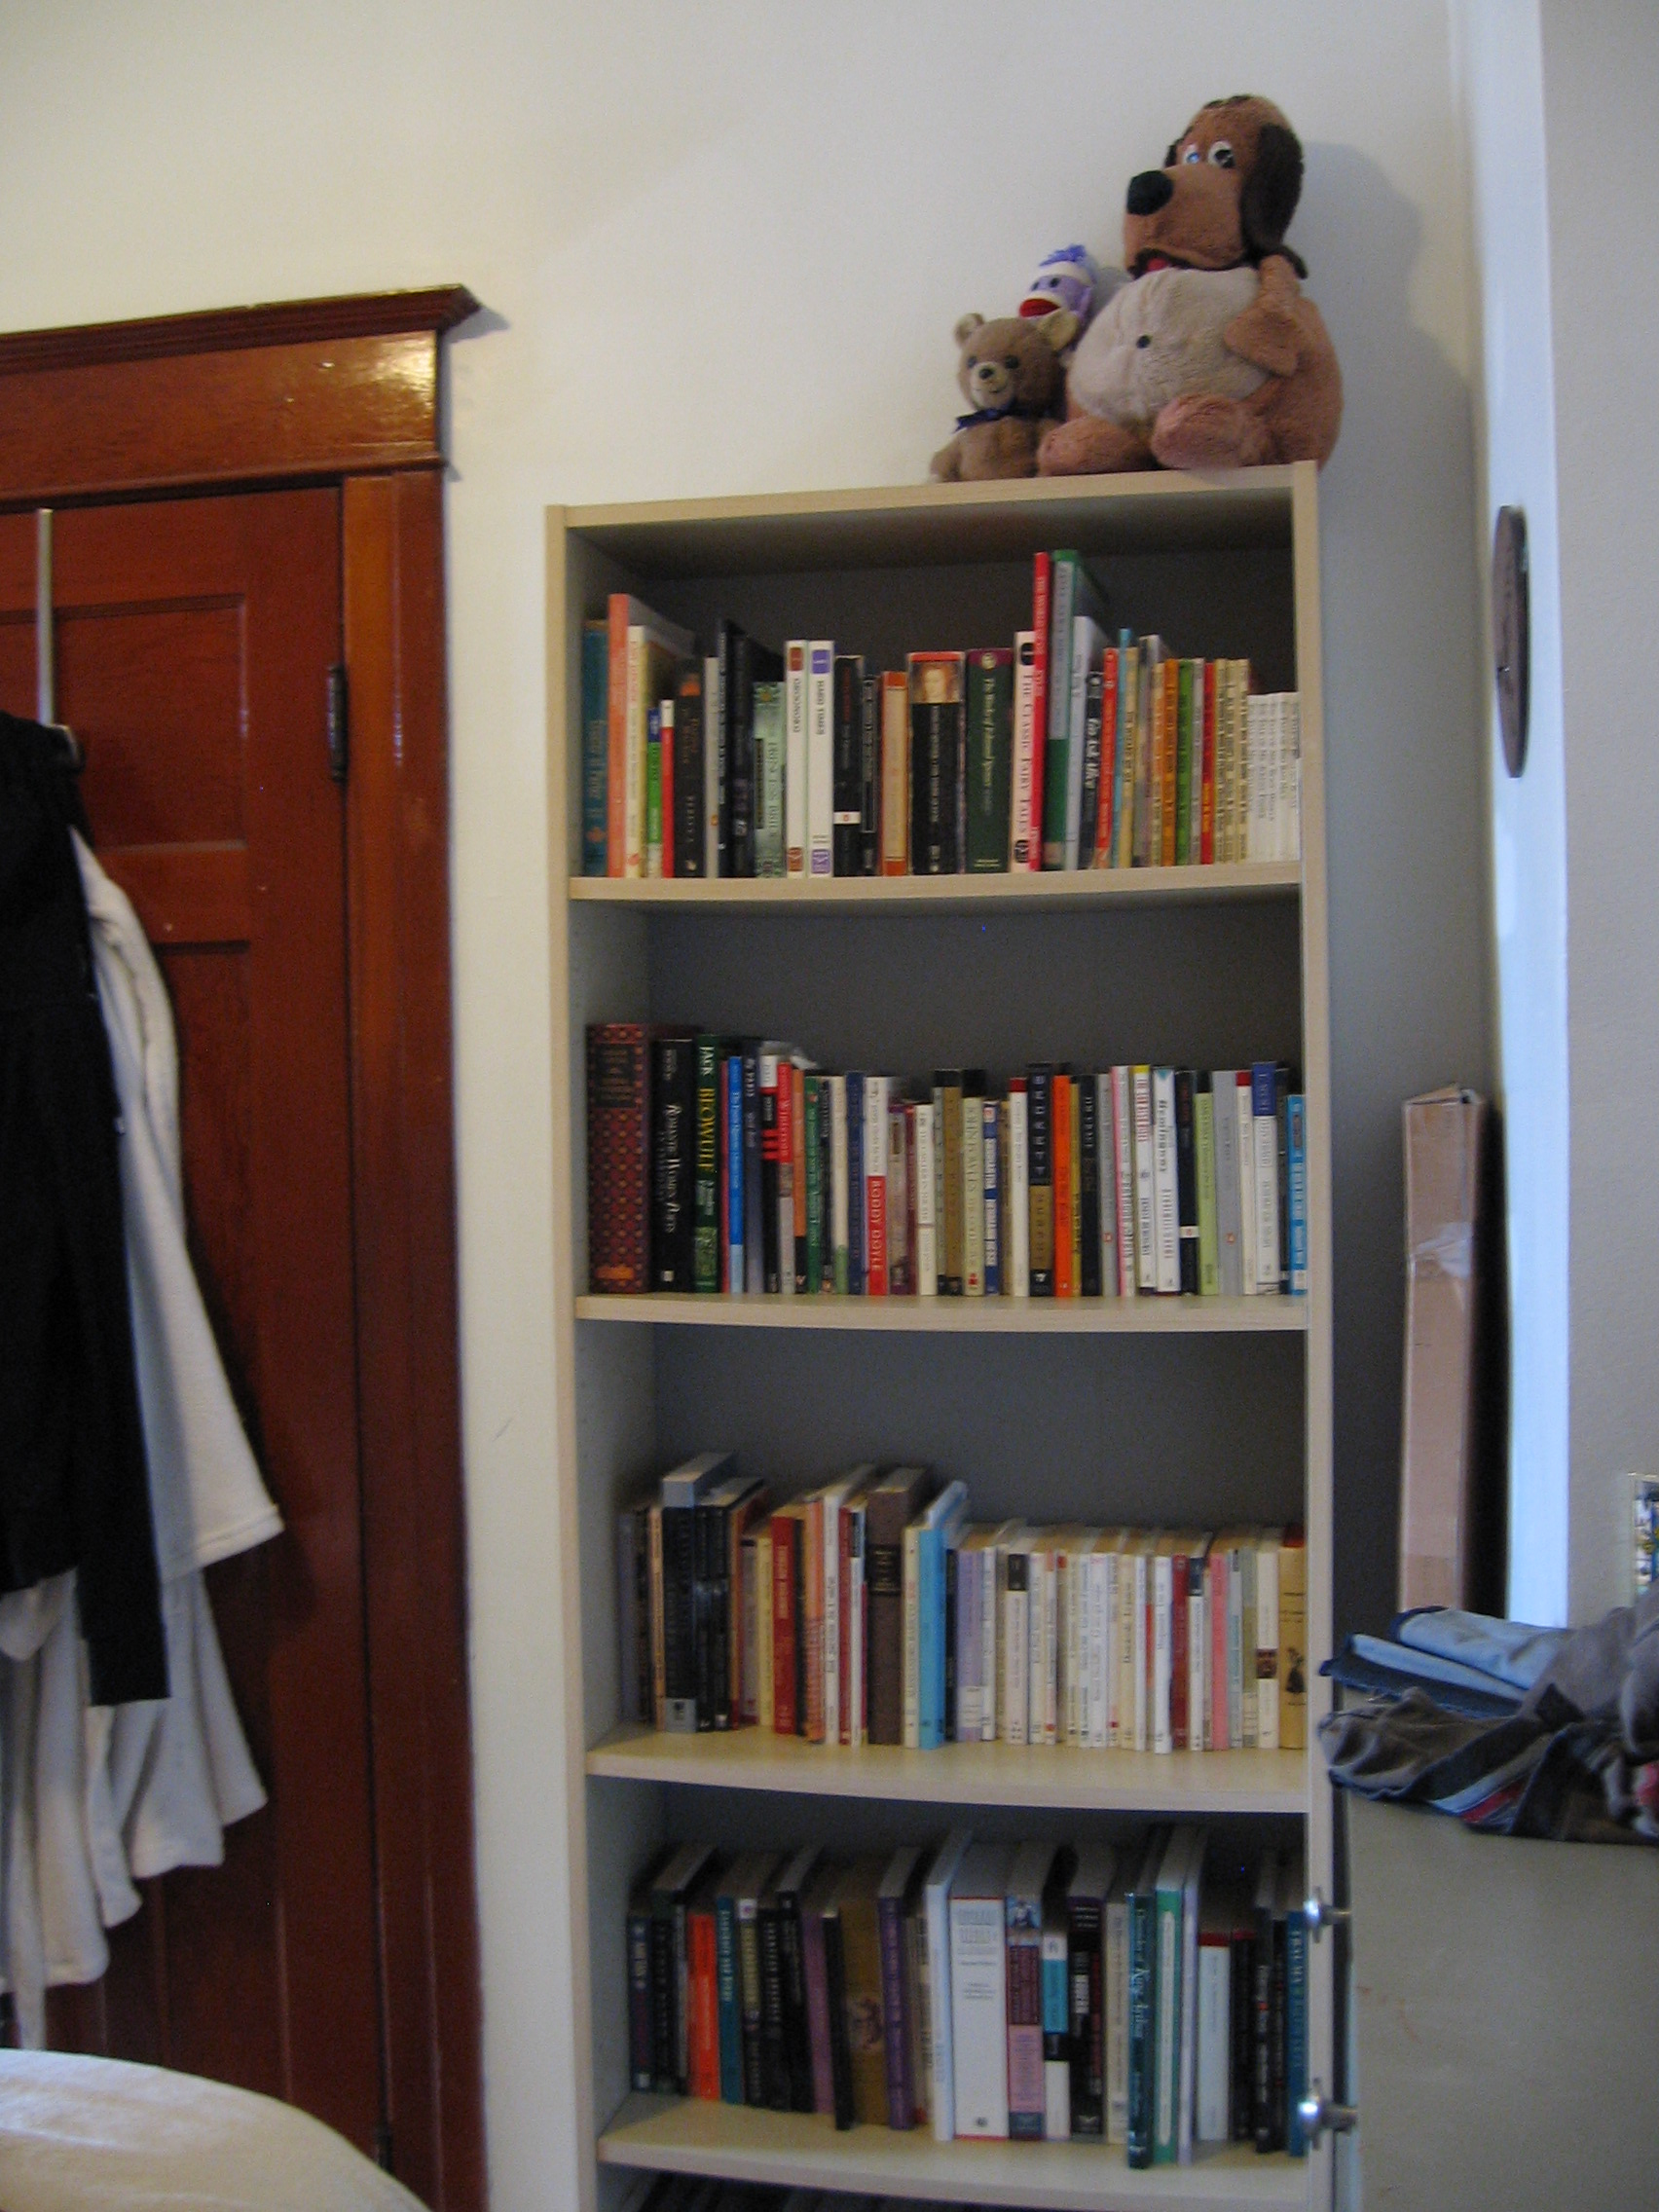 Bookcase with Stuffed Toys